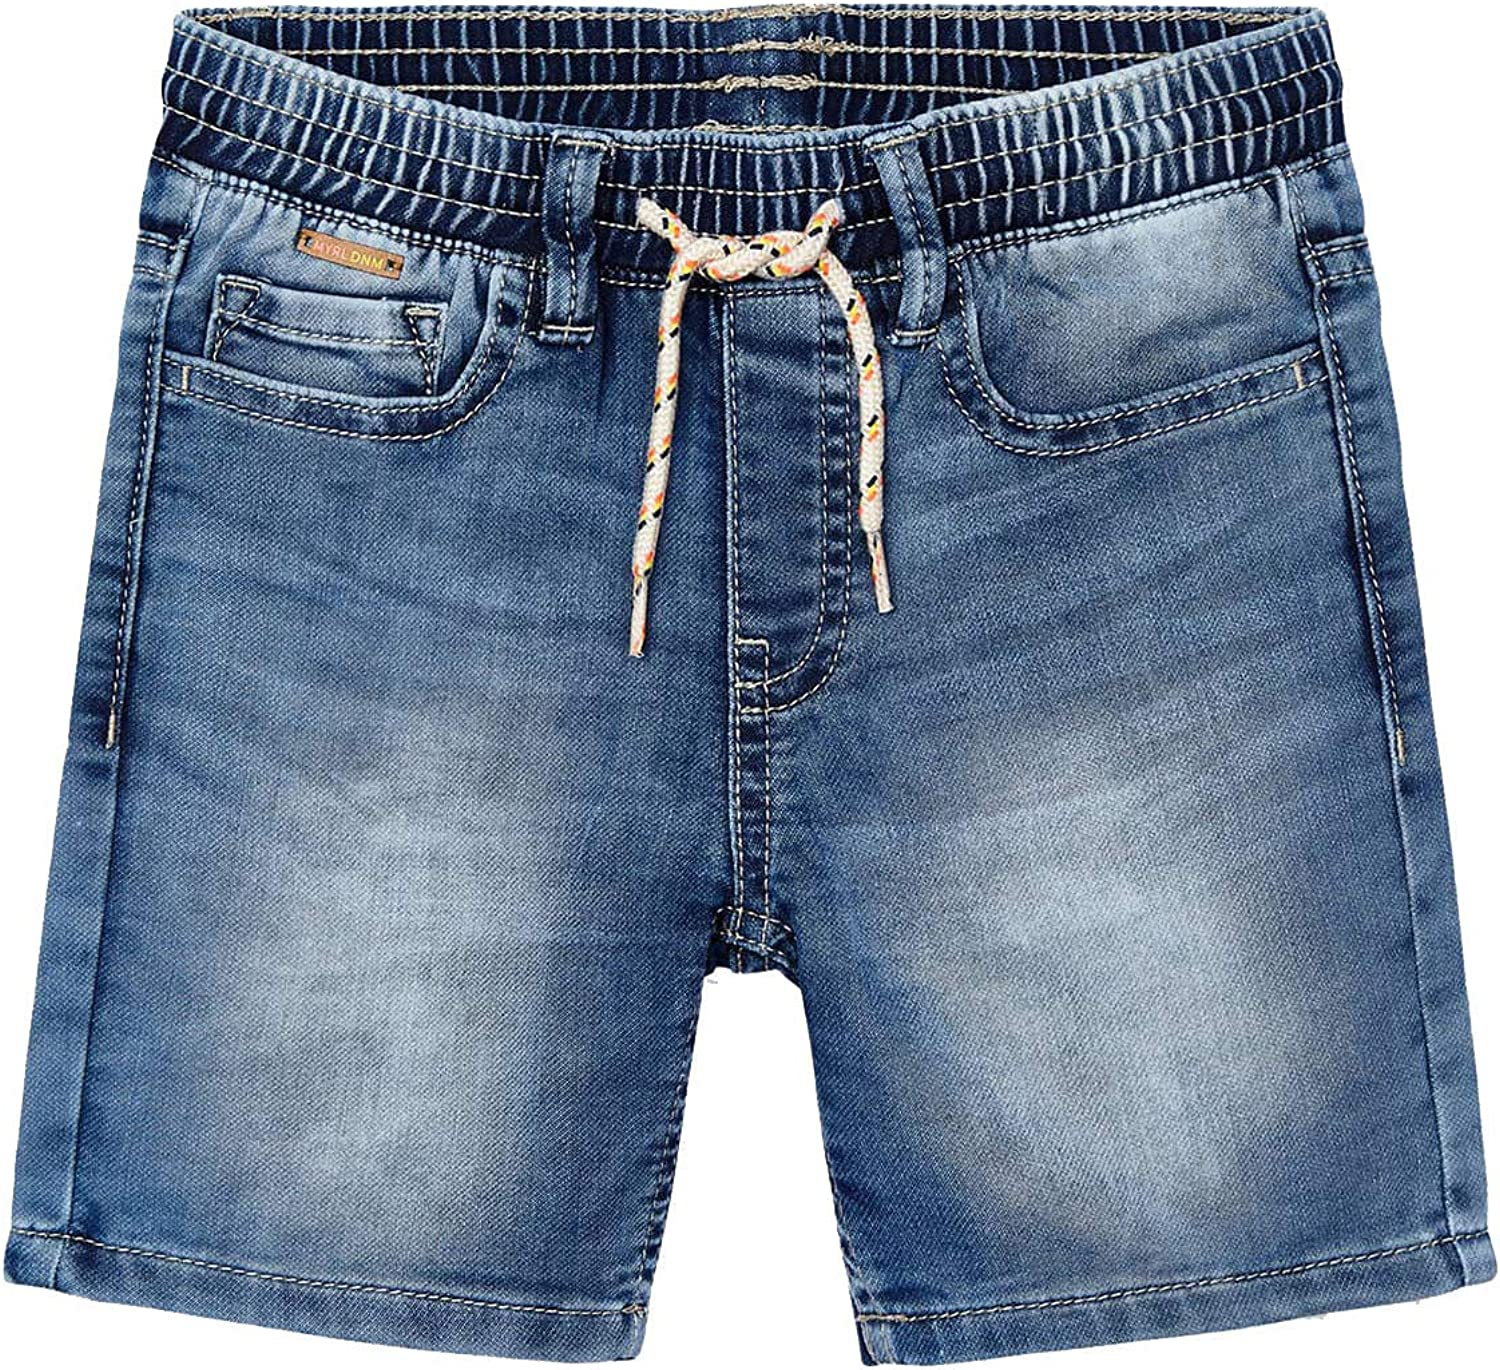 Mayoral - Soft Max 71% OFF Demin Jogger store 3227 Light Shorts for Boys